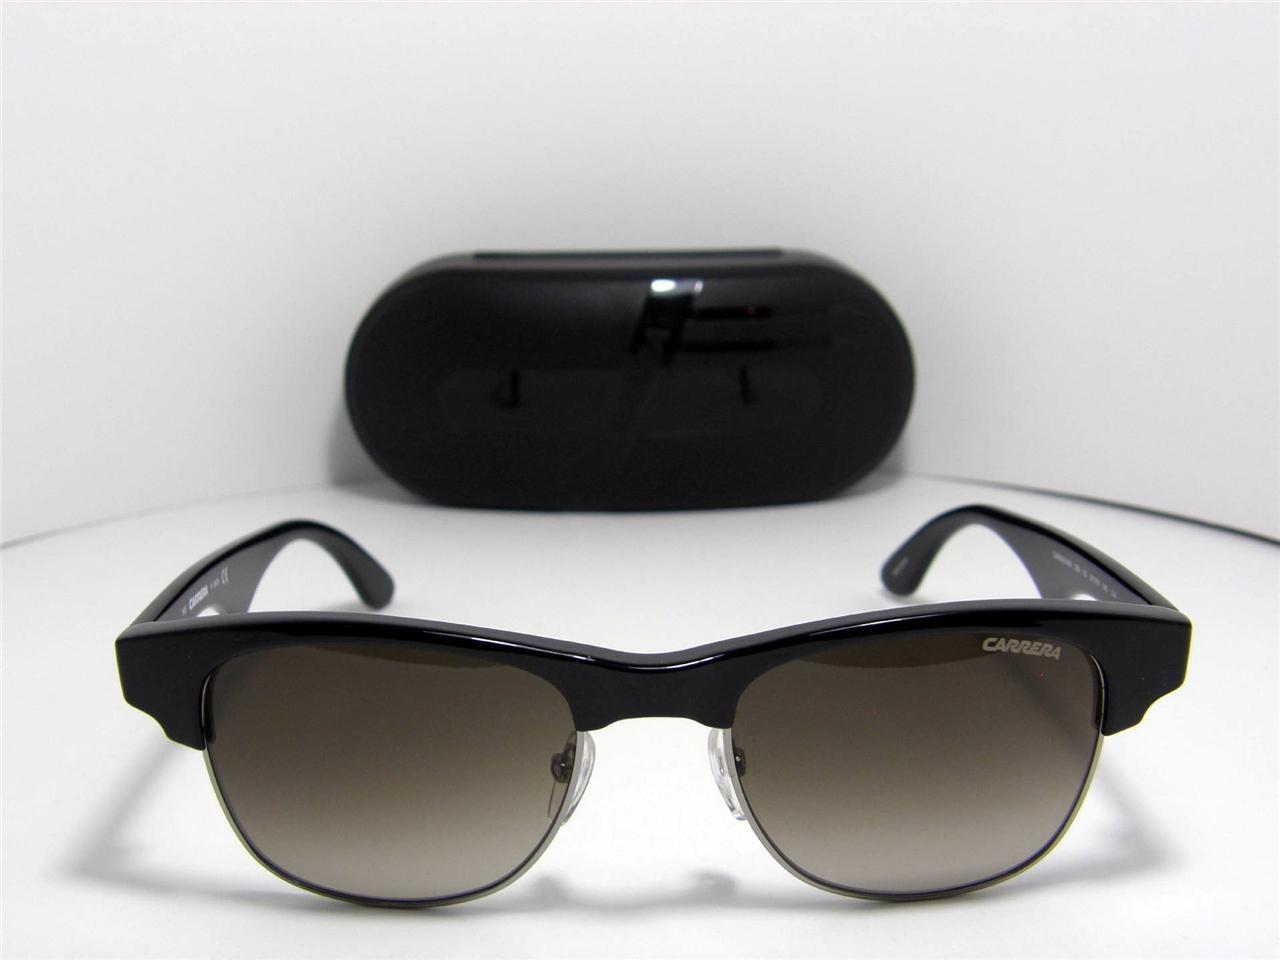 d7880fbf9735 Hot New Authentic Carrera Sunglasses CA 6009/S DEA CC 51mm CA 6009 S DEACC  - $79.16